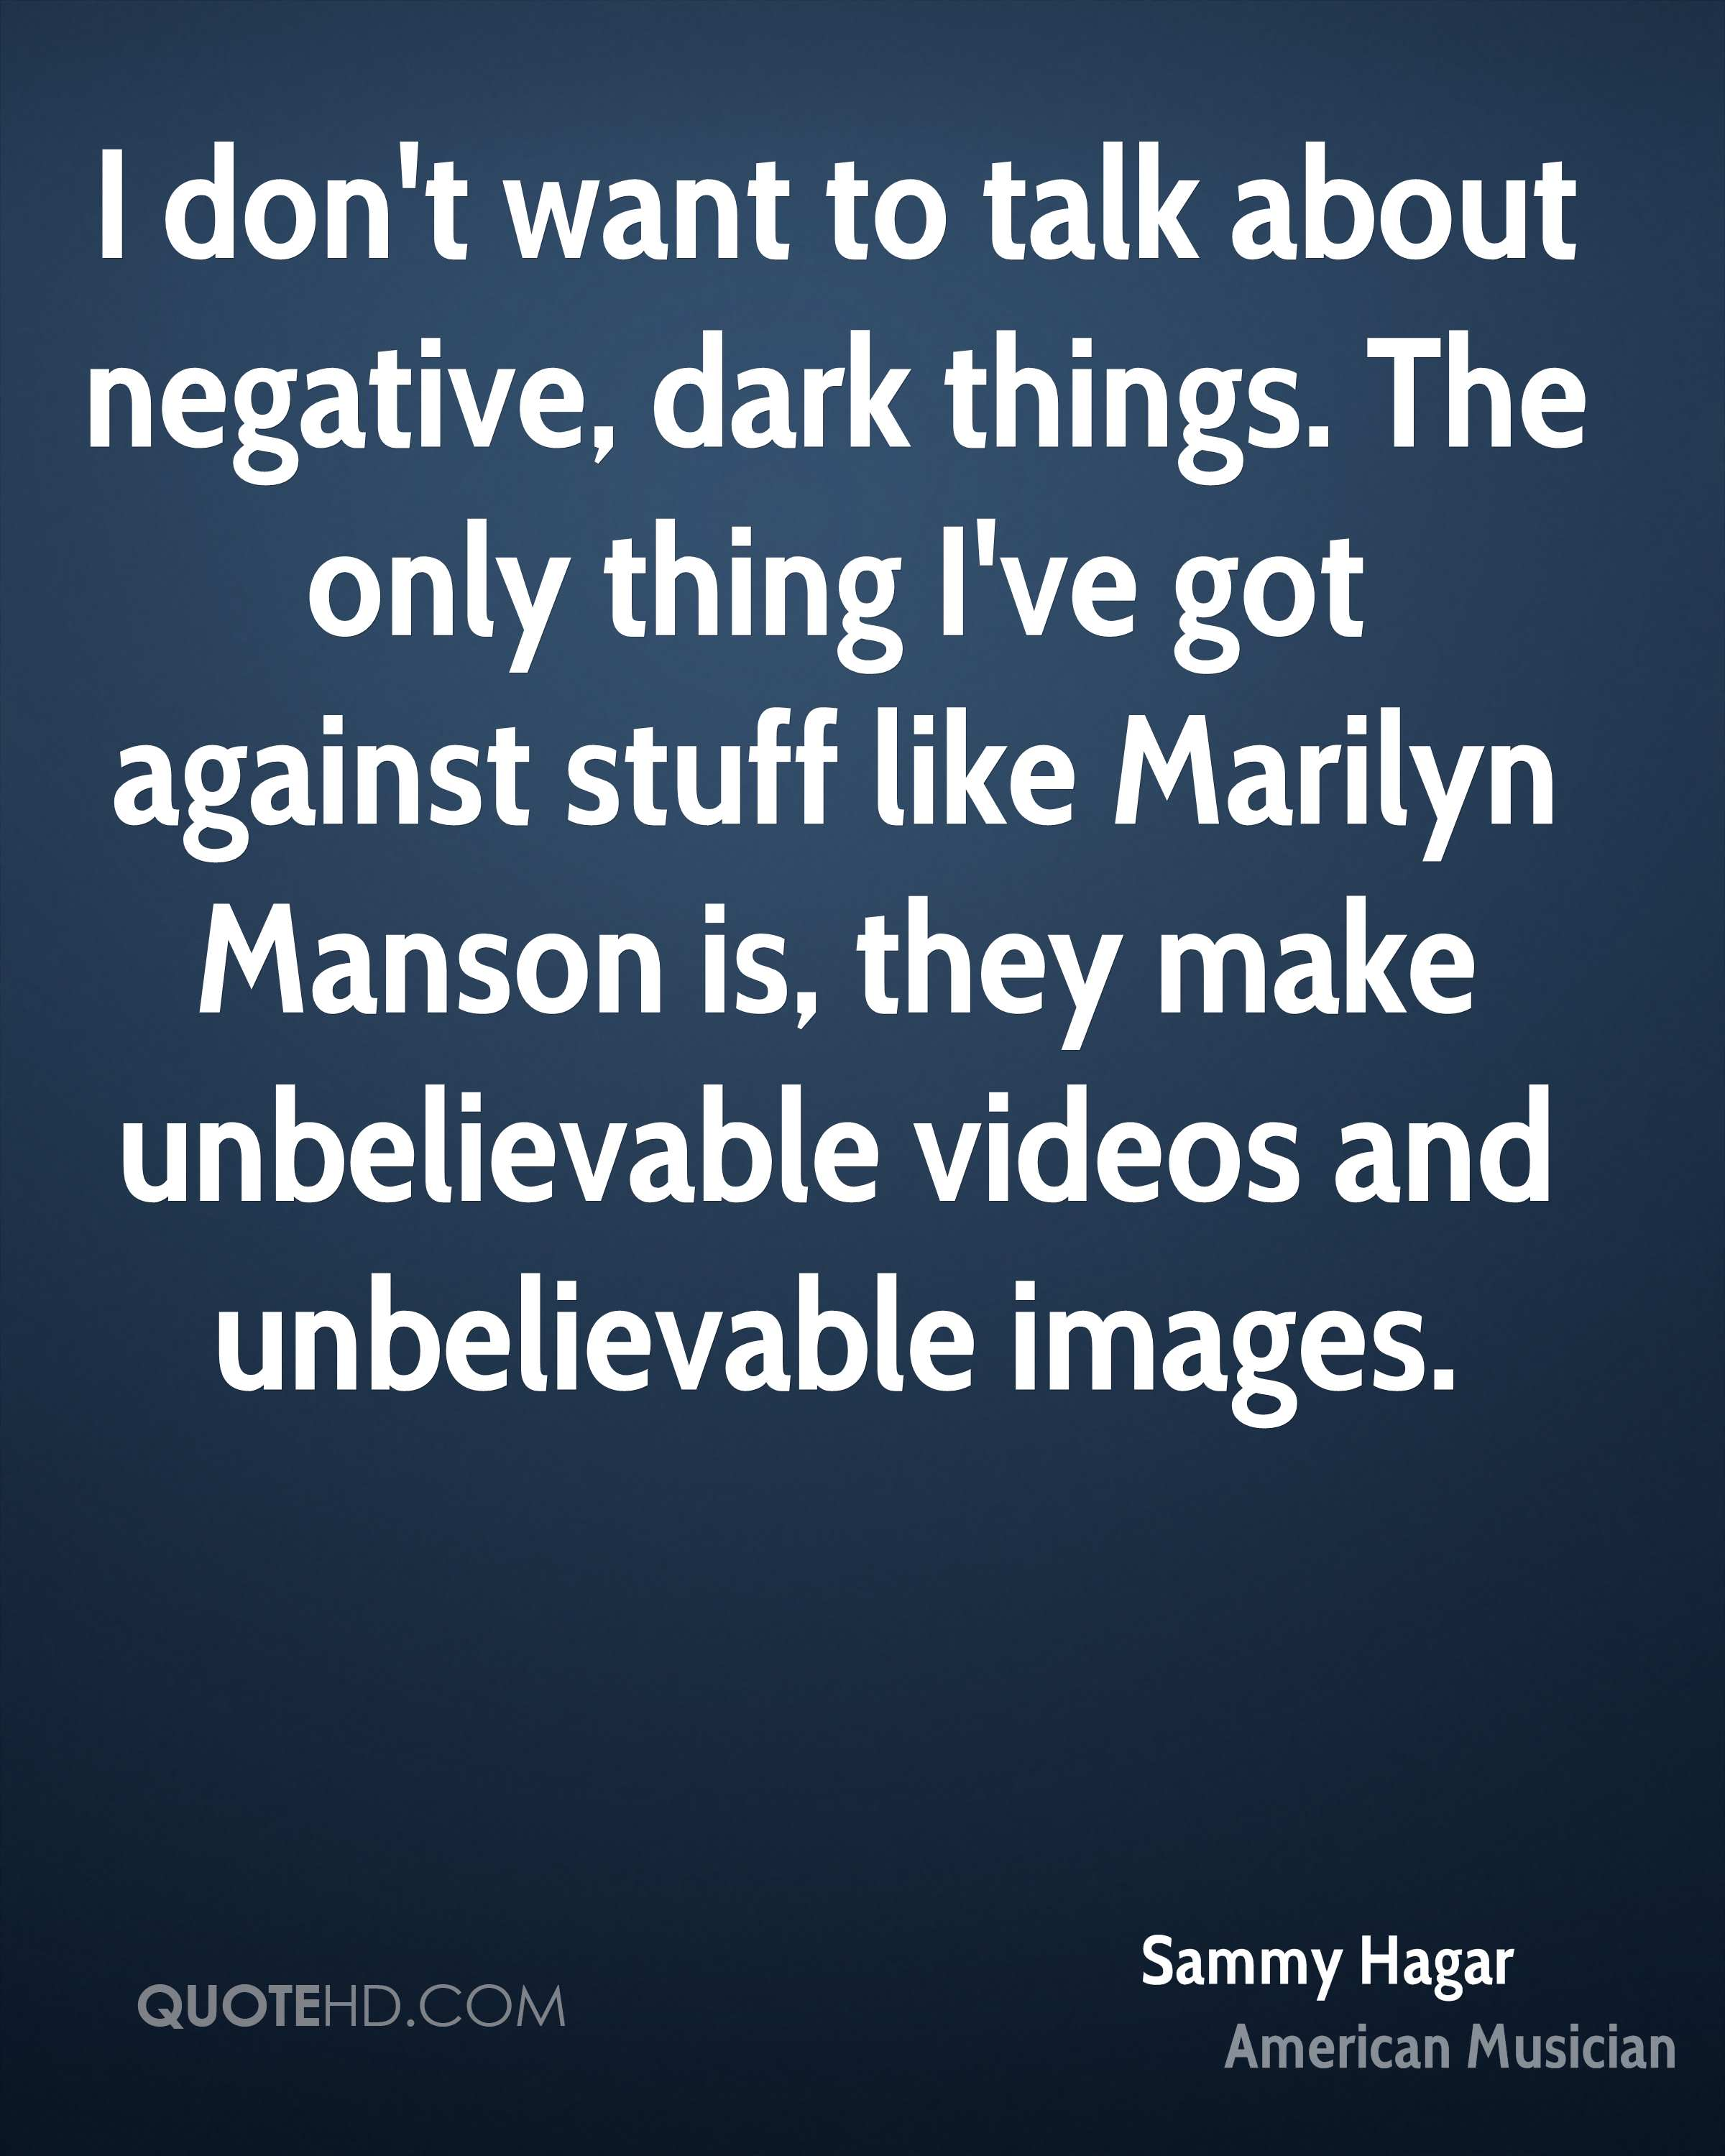 I don't want to talk about negative, dark things. The only thing I've got against stuff like Marilyn Manson is, they make unbelievable videos and unbelievable images.